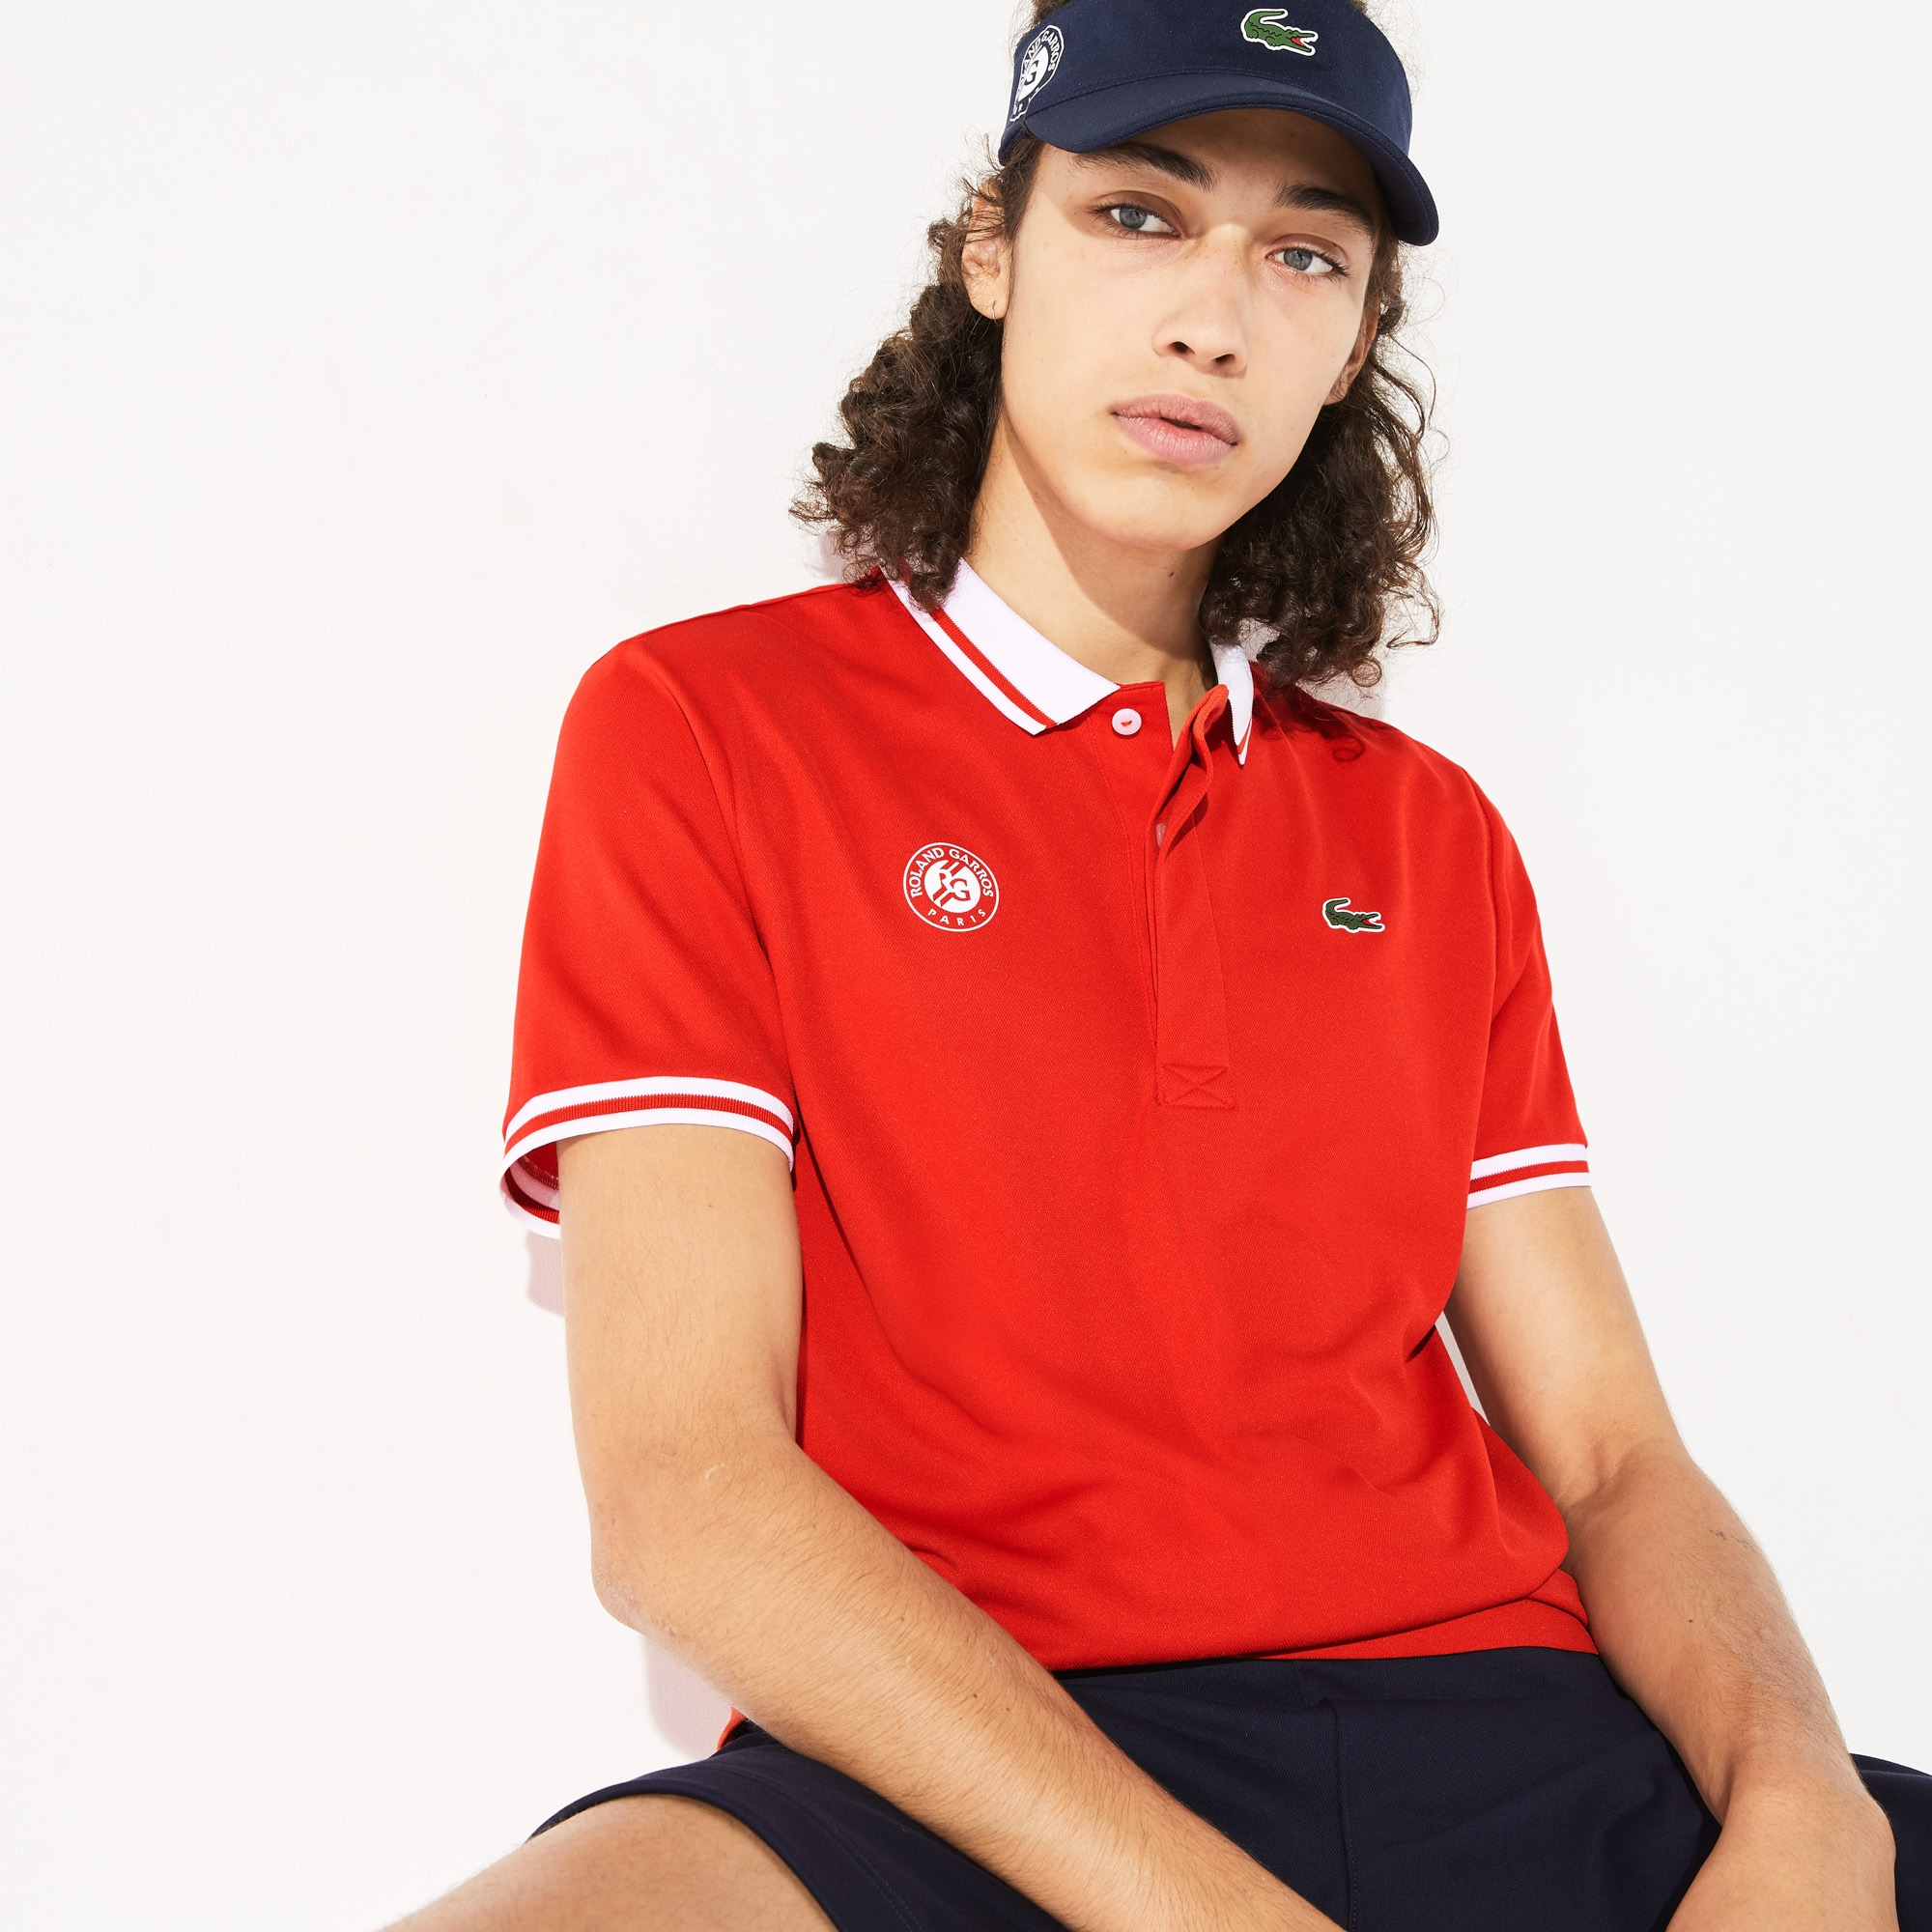 라코스테 스포츠 롤랑가로스 셔츠 Lacoste Mens SPORT Roland Garros Breathable Pique Polo Shirt,Red / White / Green • YMF